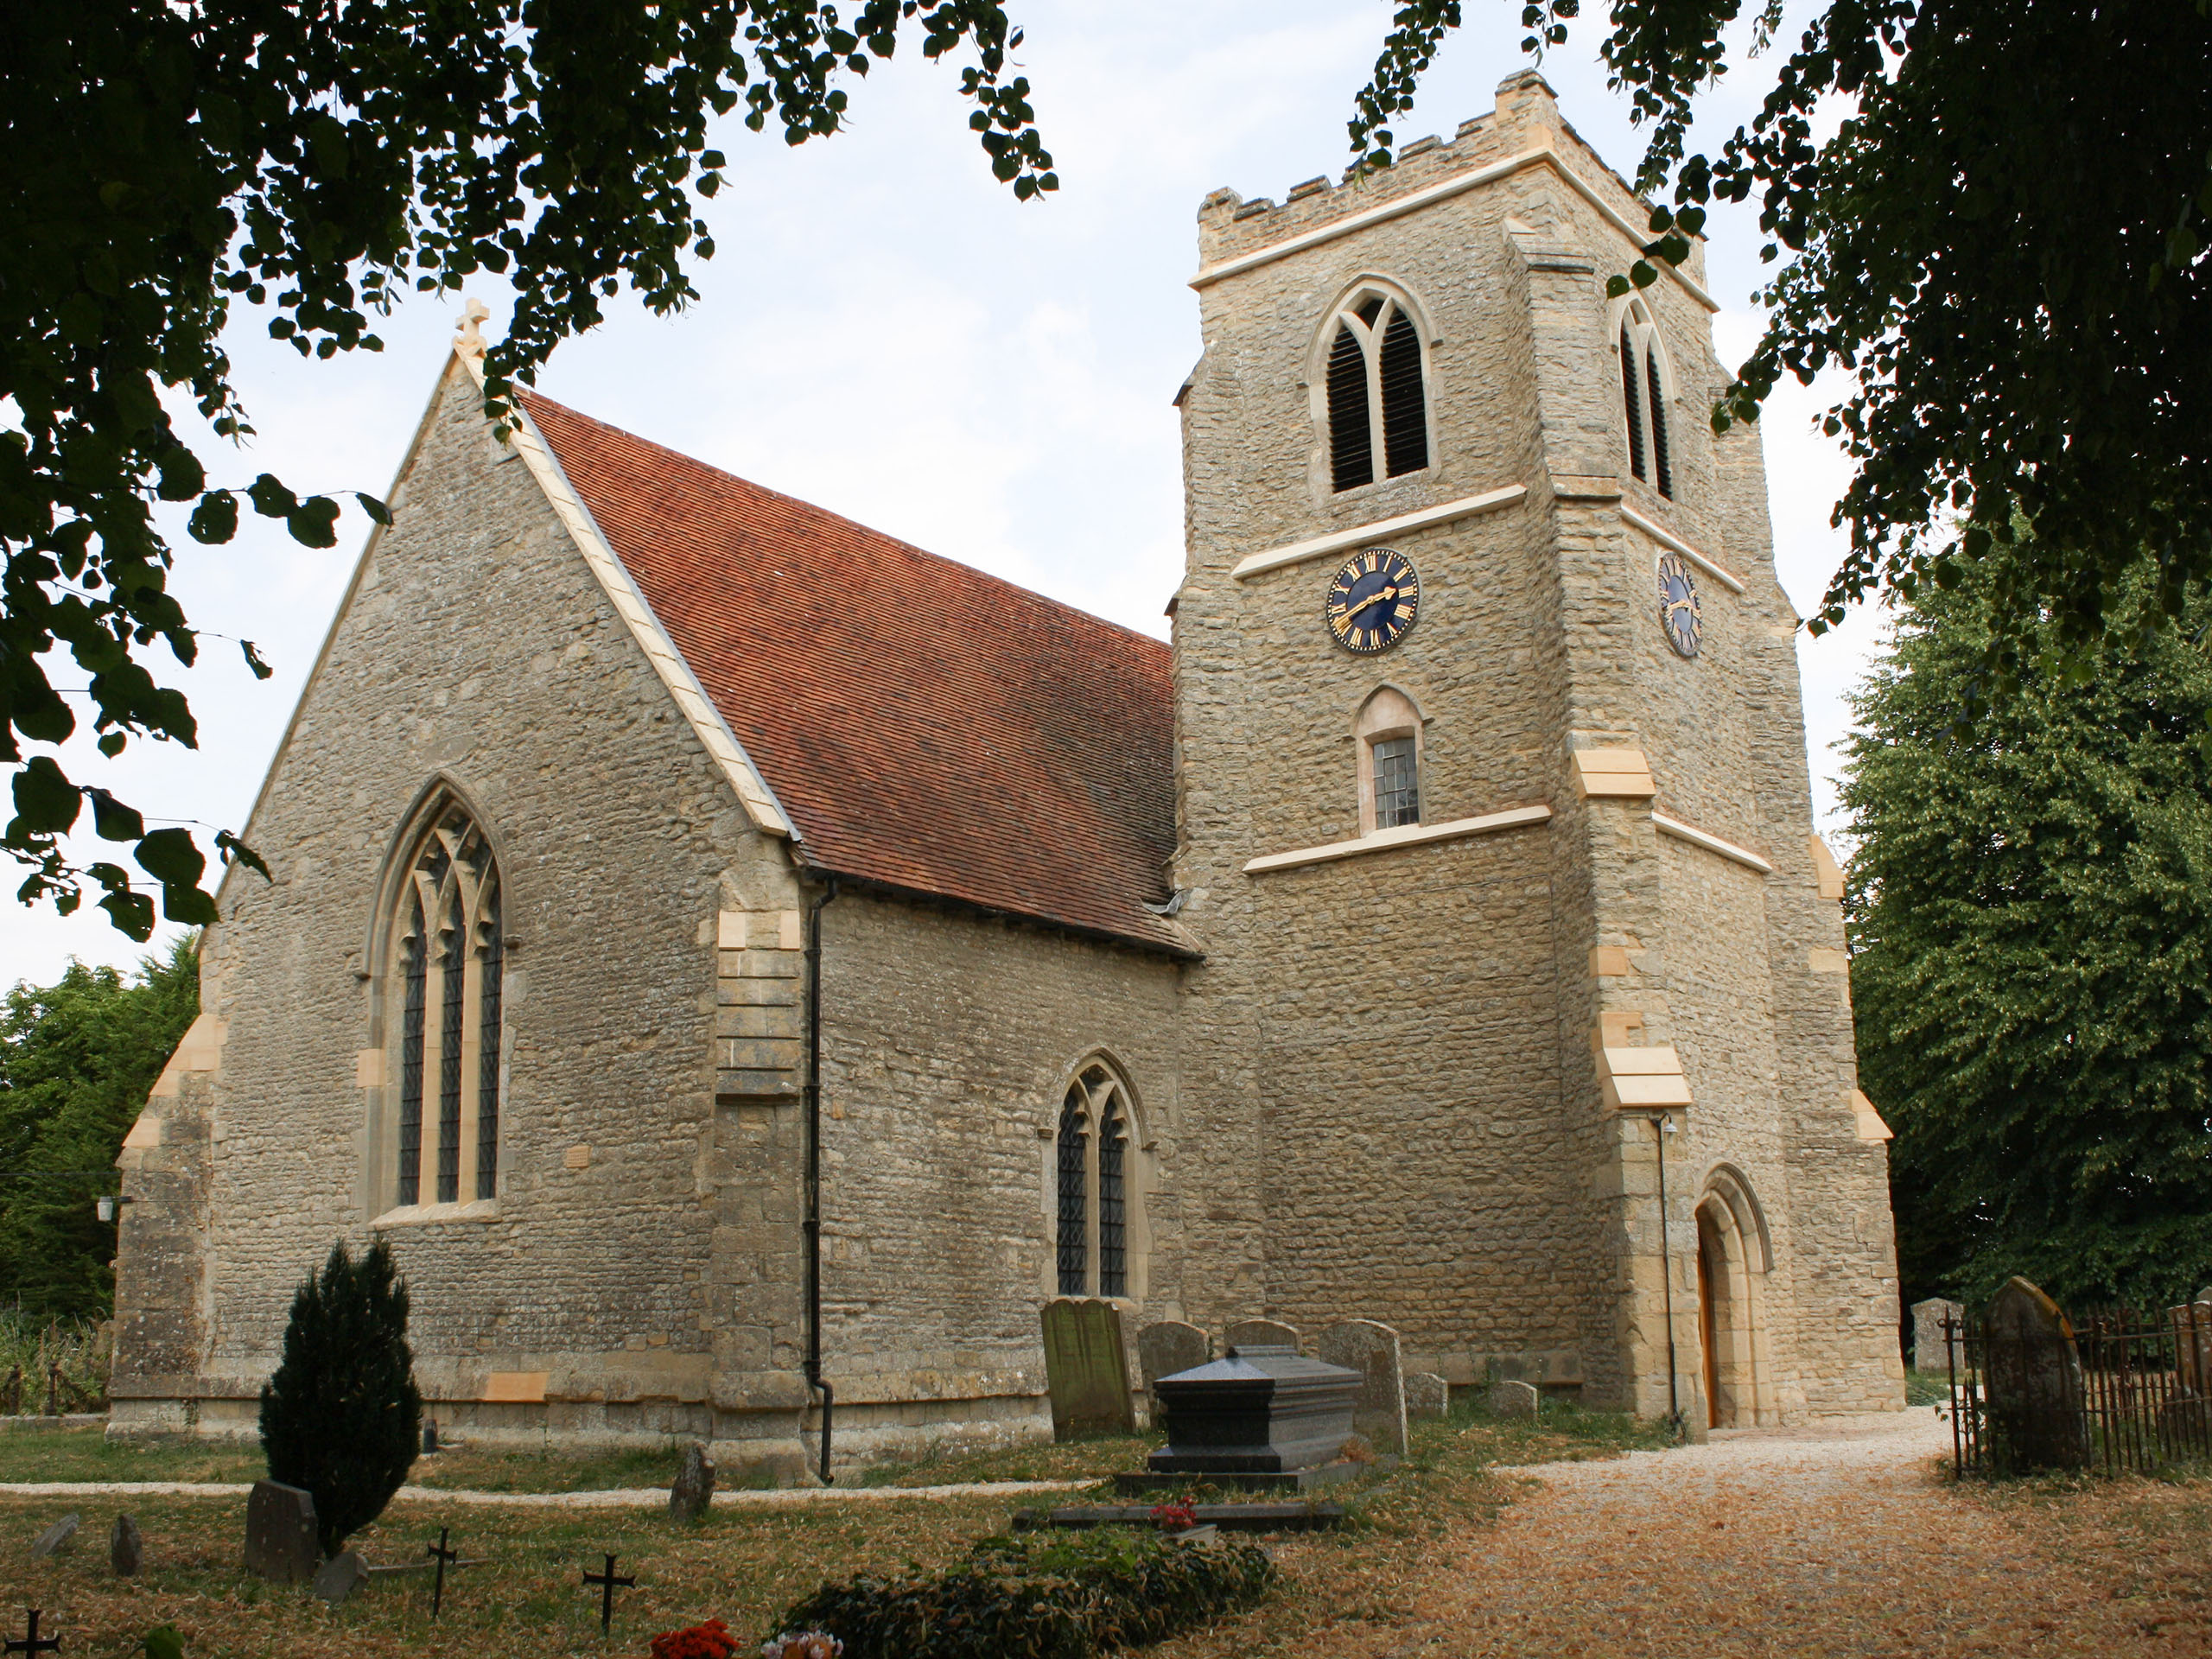 St Catherine's Church, Towersey, Oxfordshire Image 15